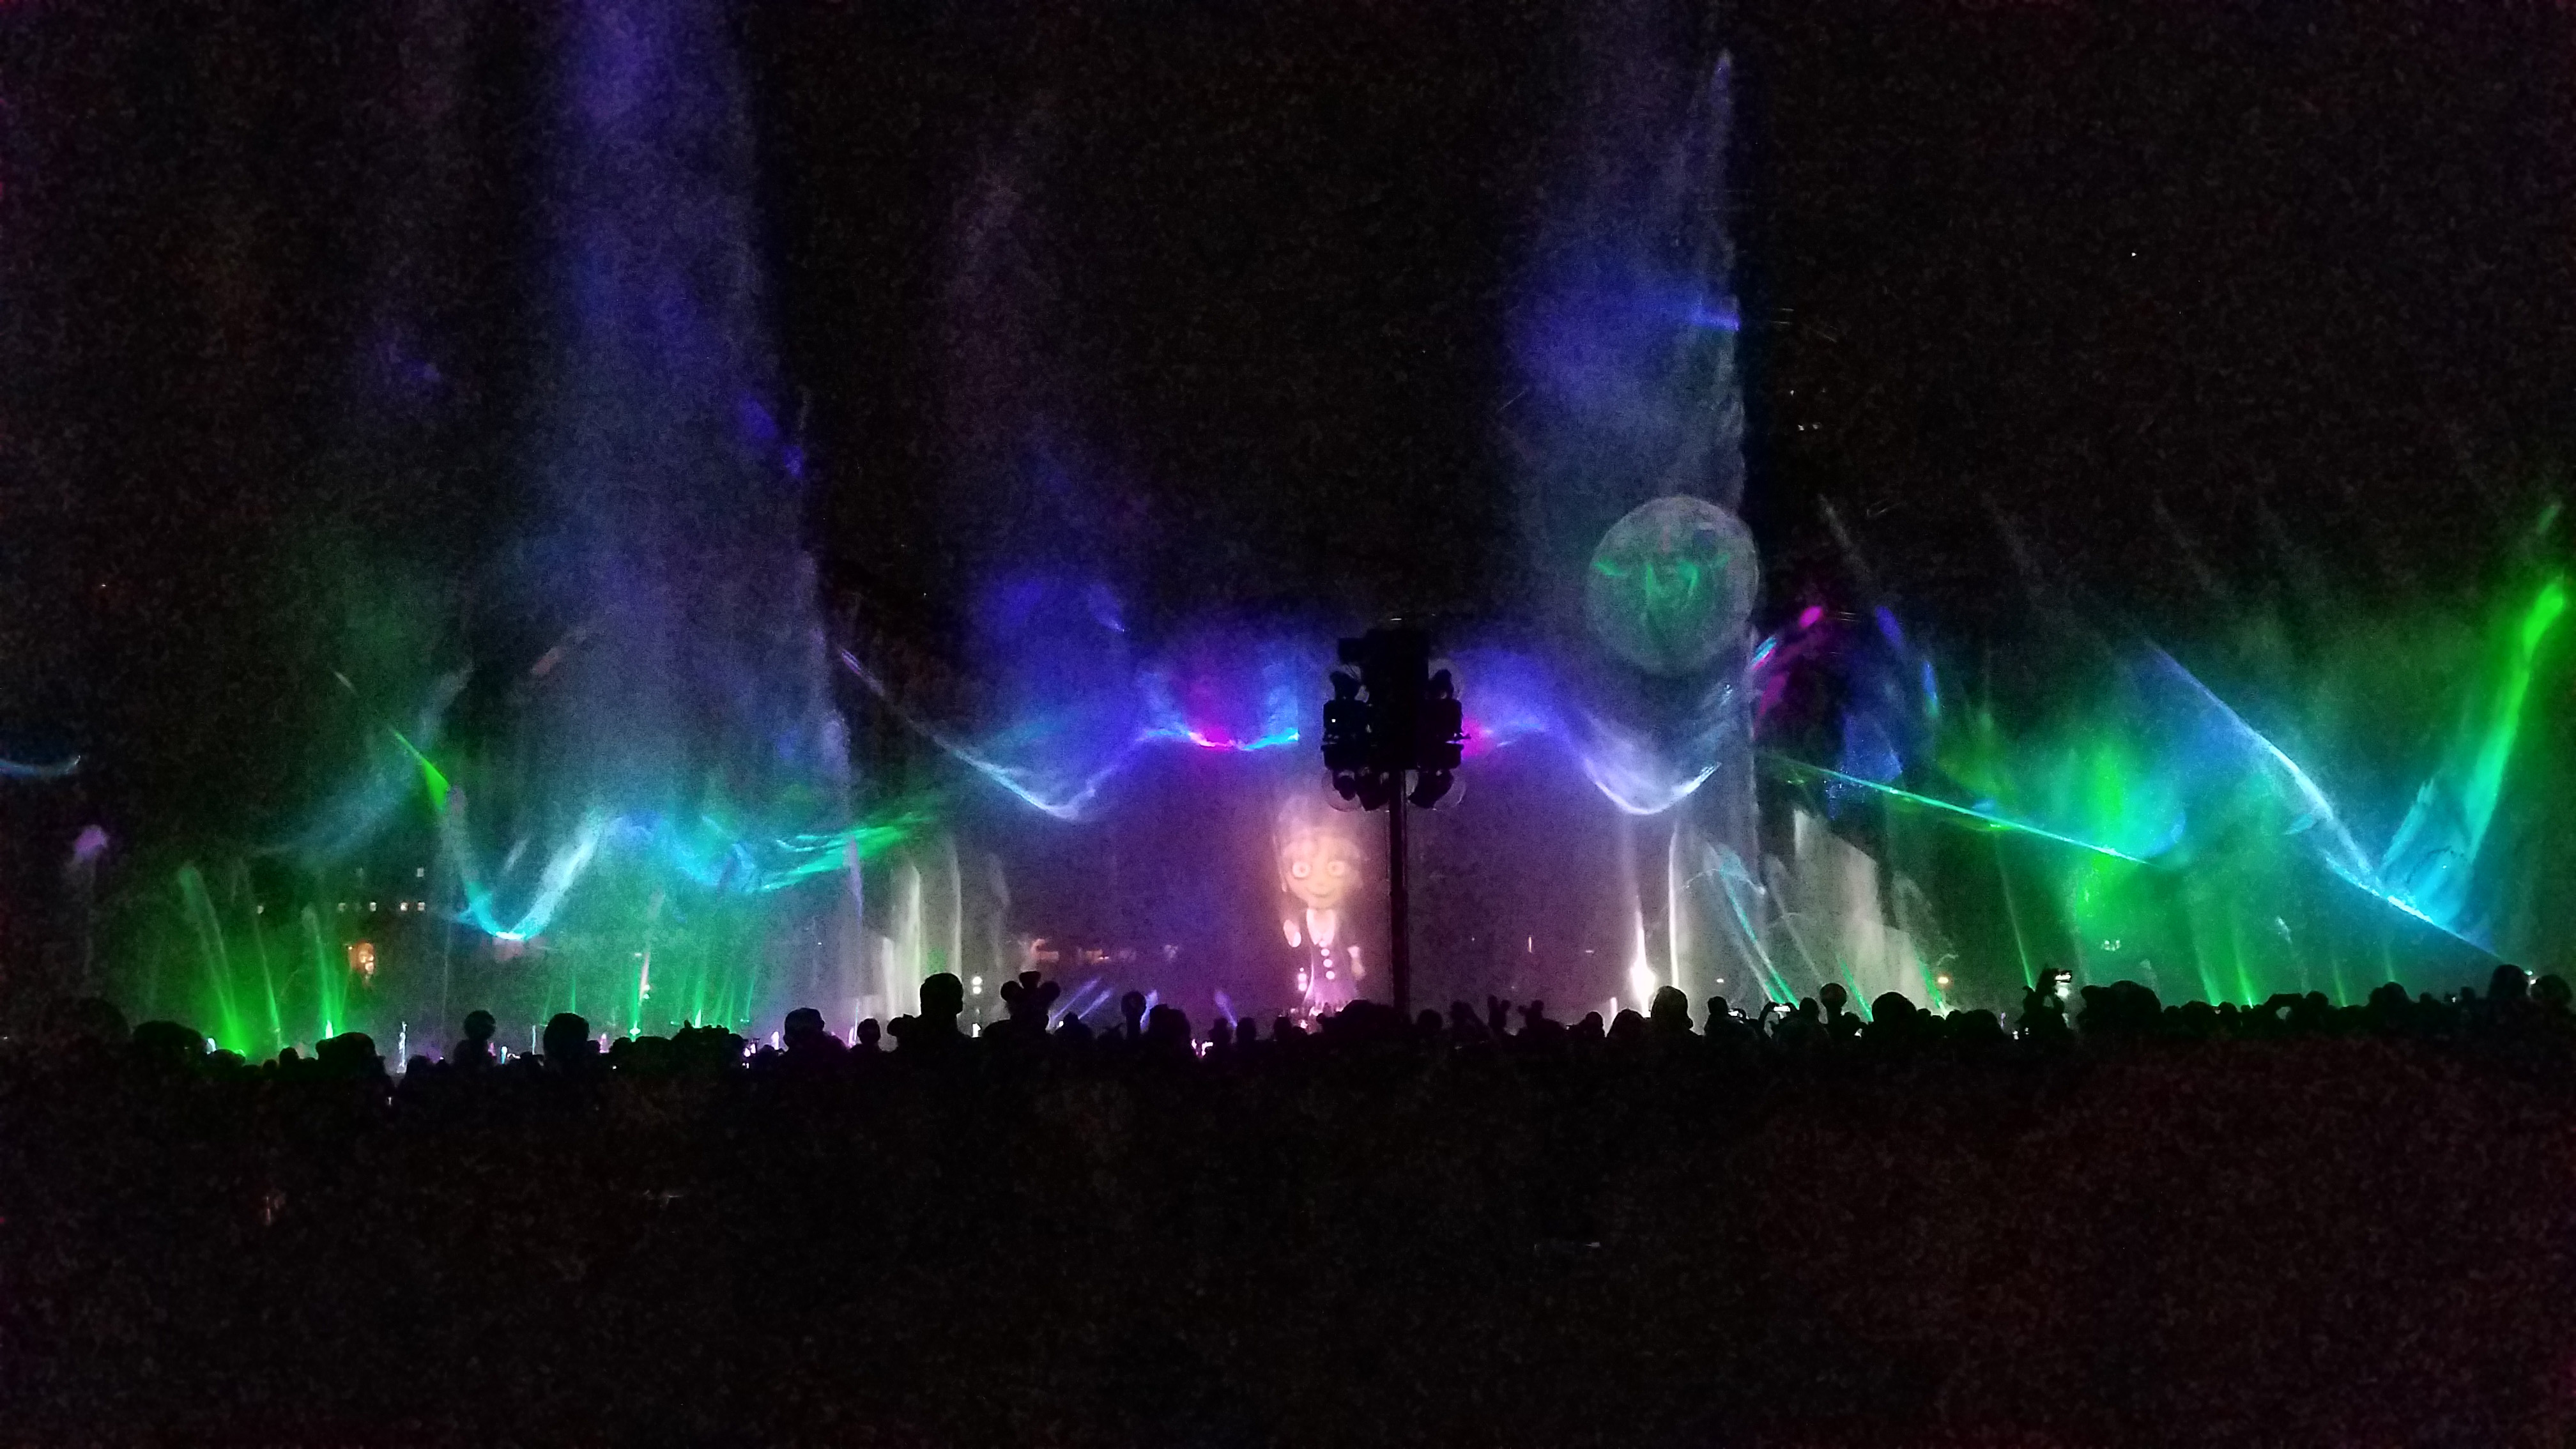 World of Color: Villainous!